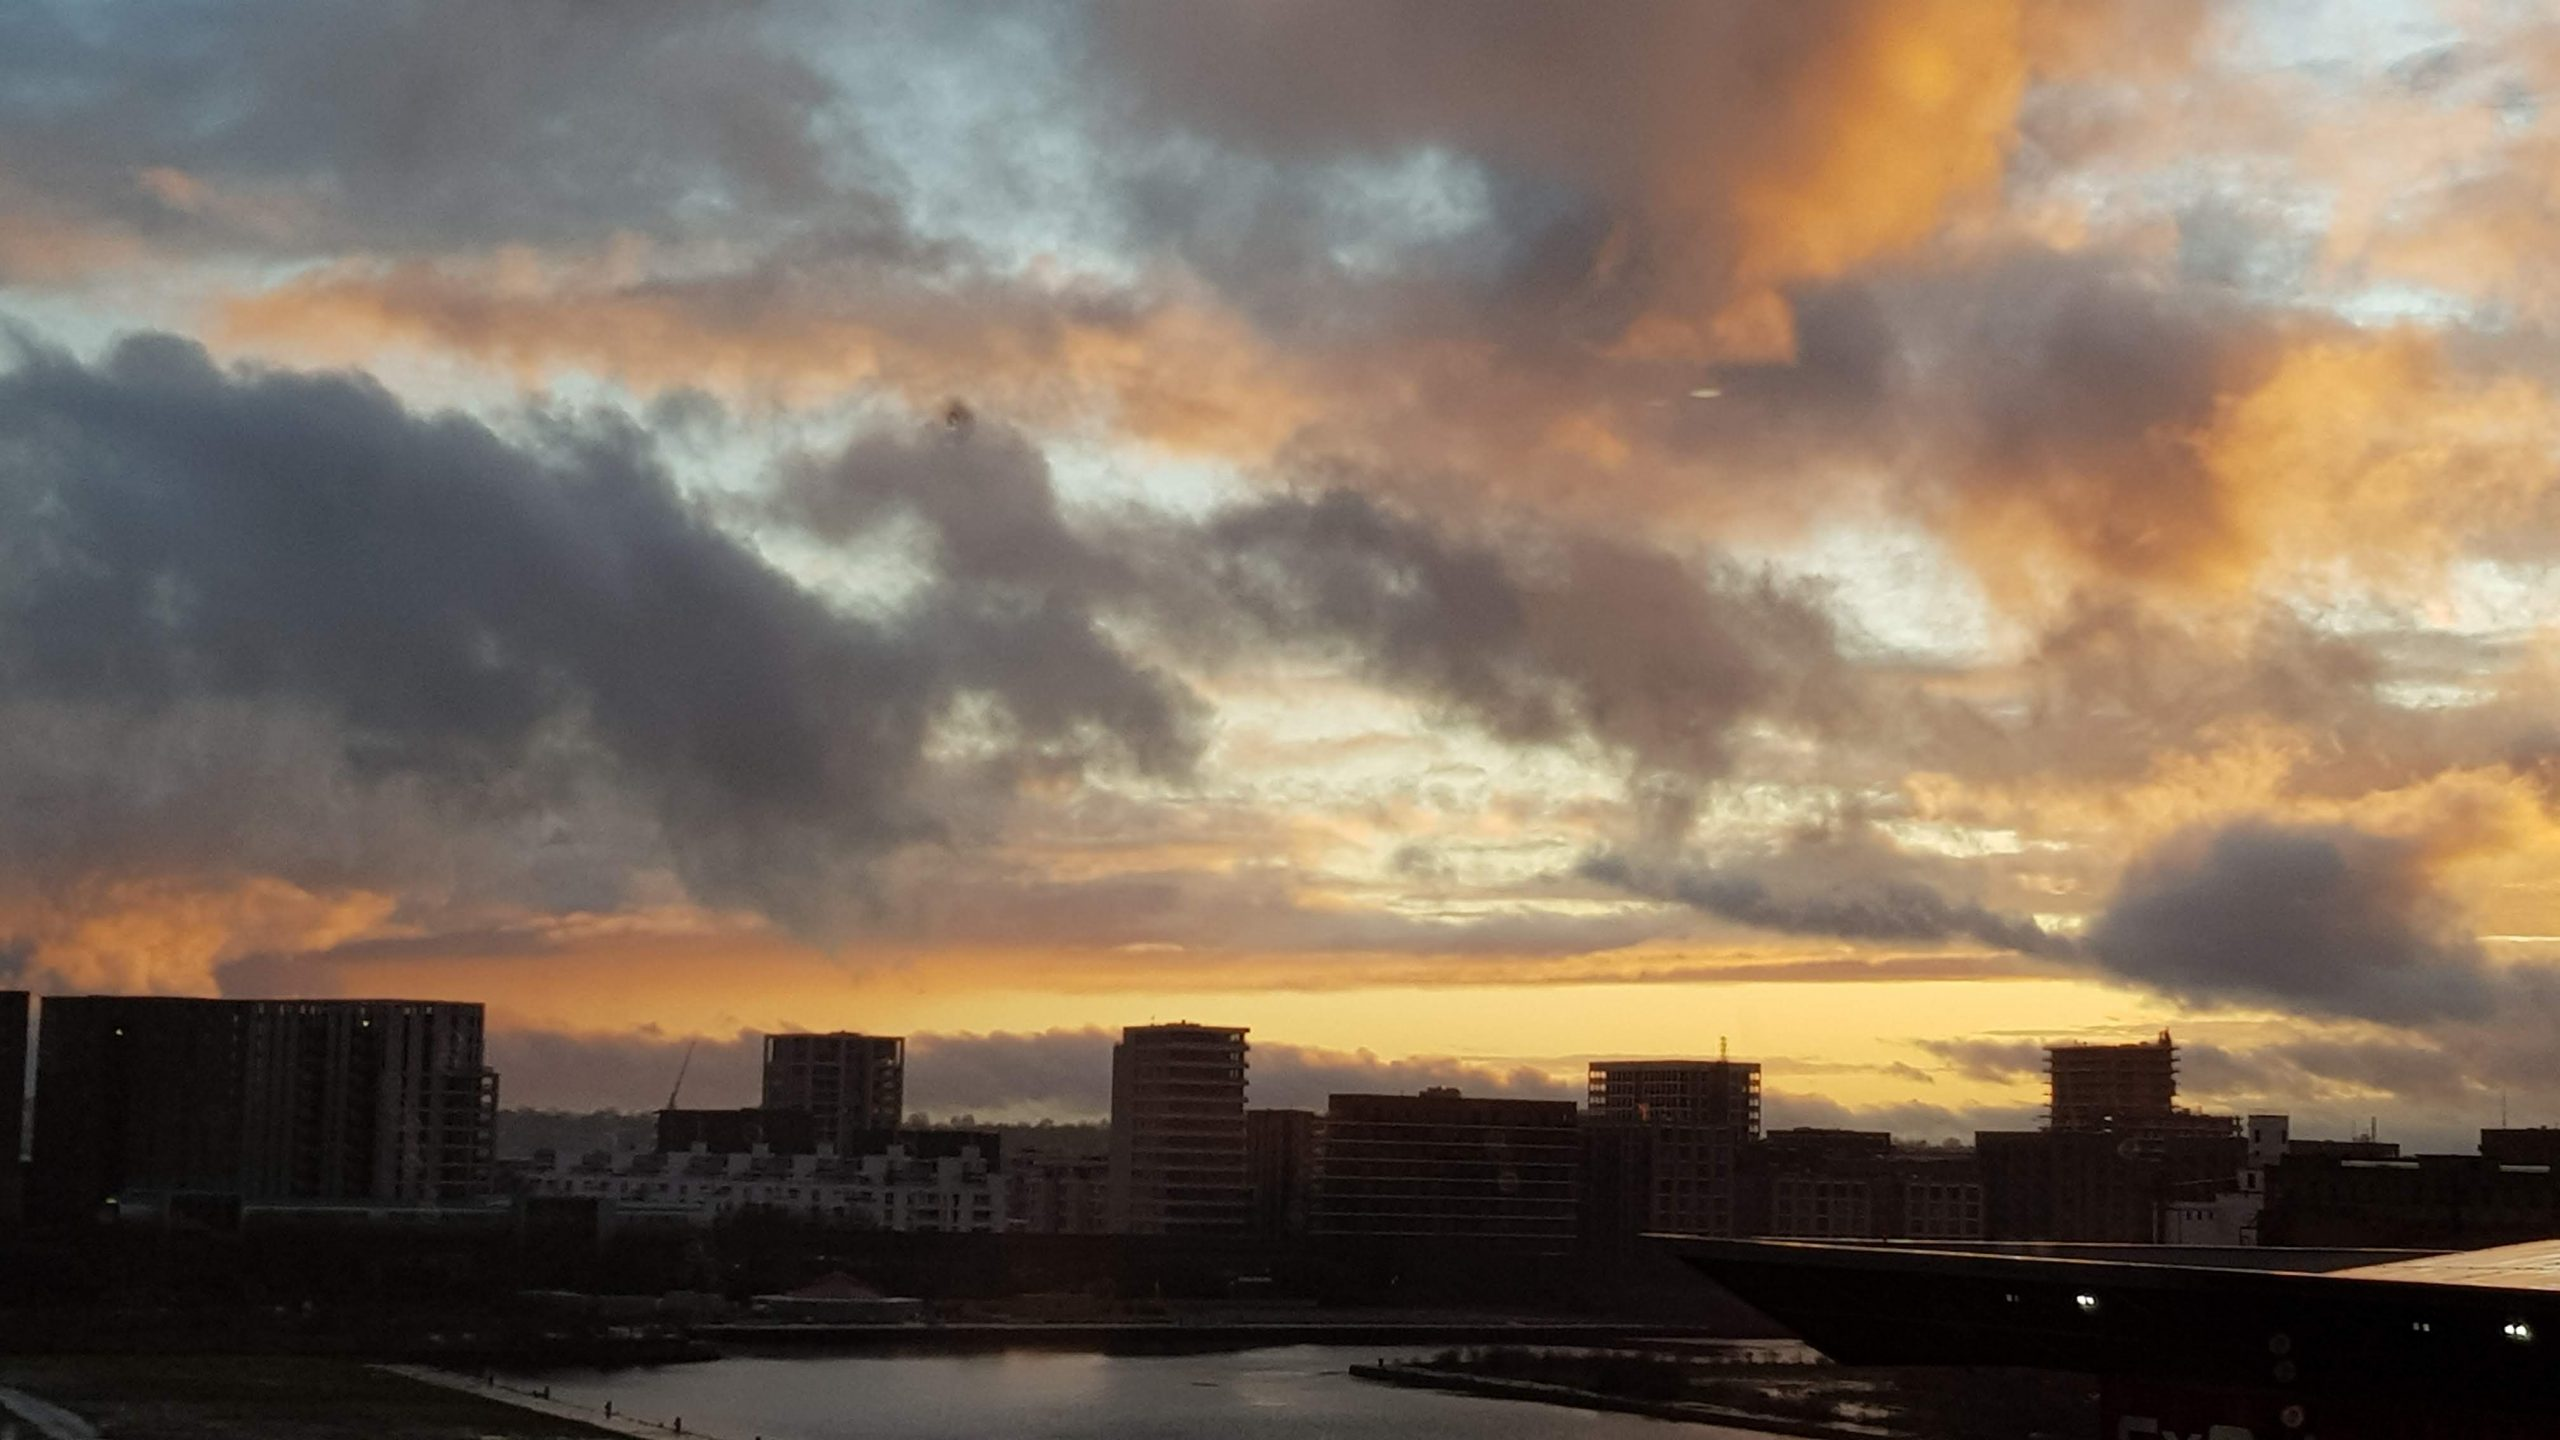 Sunset from the Aloft